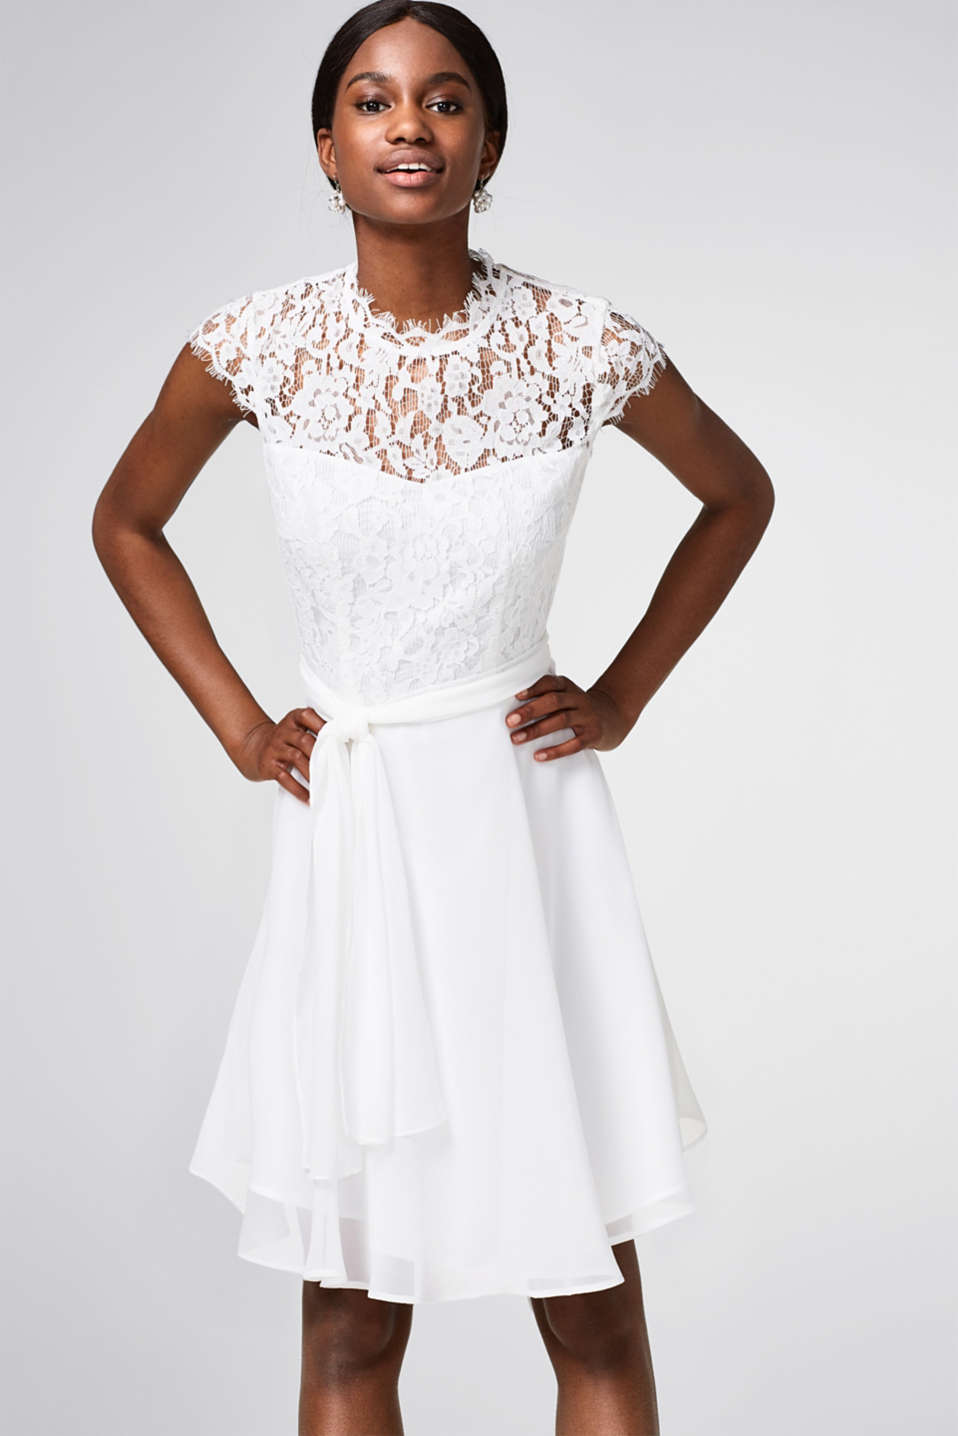 Esprit - Cocktail/wedding dress in lace and chiffon